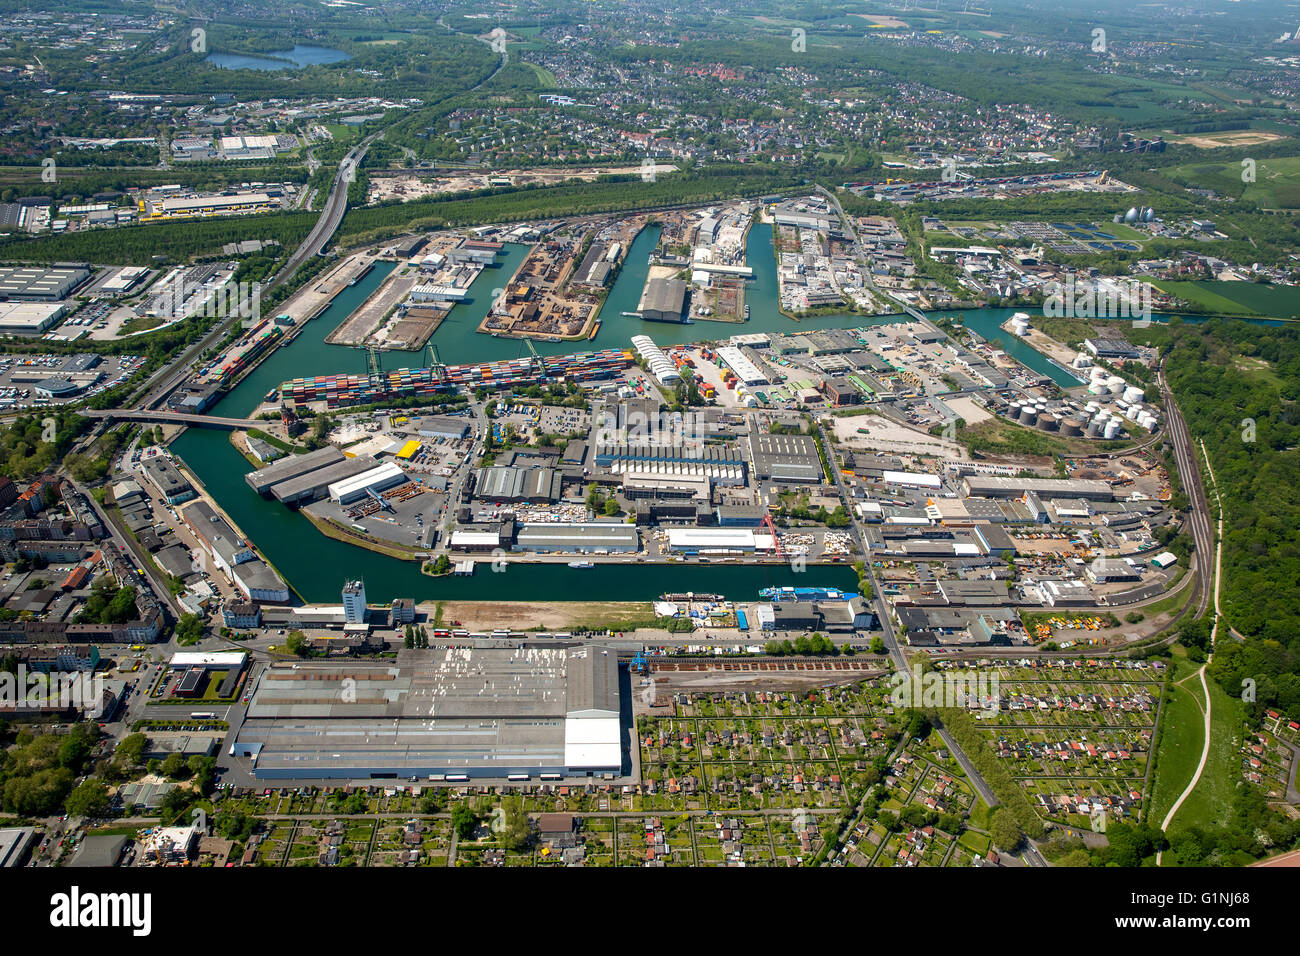 Aerial view, Dortmunder port, inland port, Dortmund-Ems Canal, container port, the Port of Dortmund AG, Old Port - Stock Image